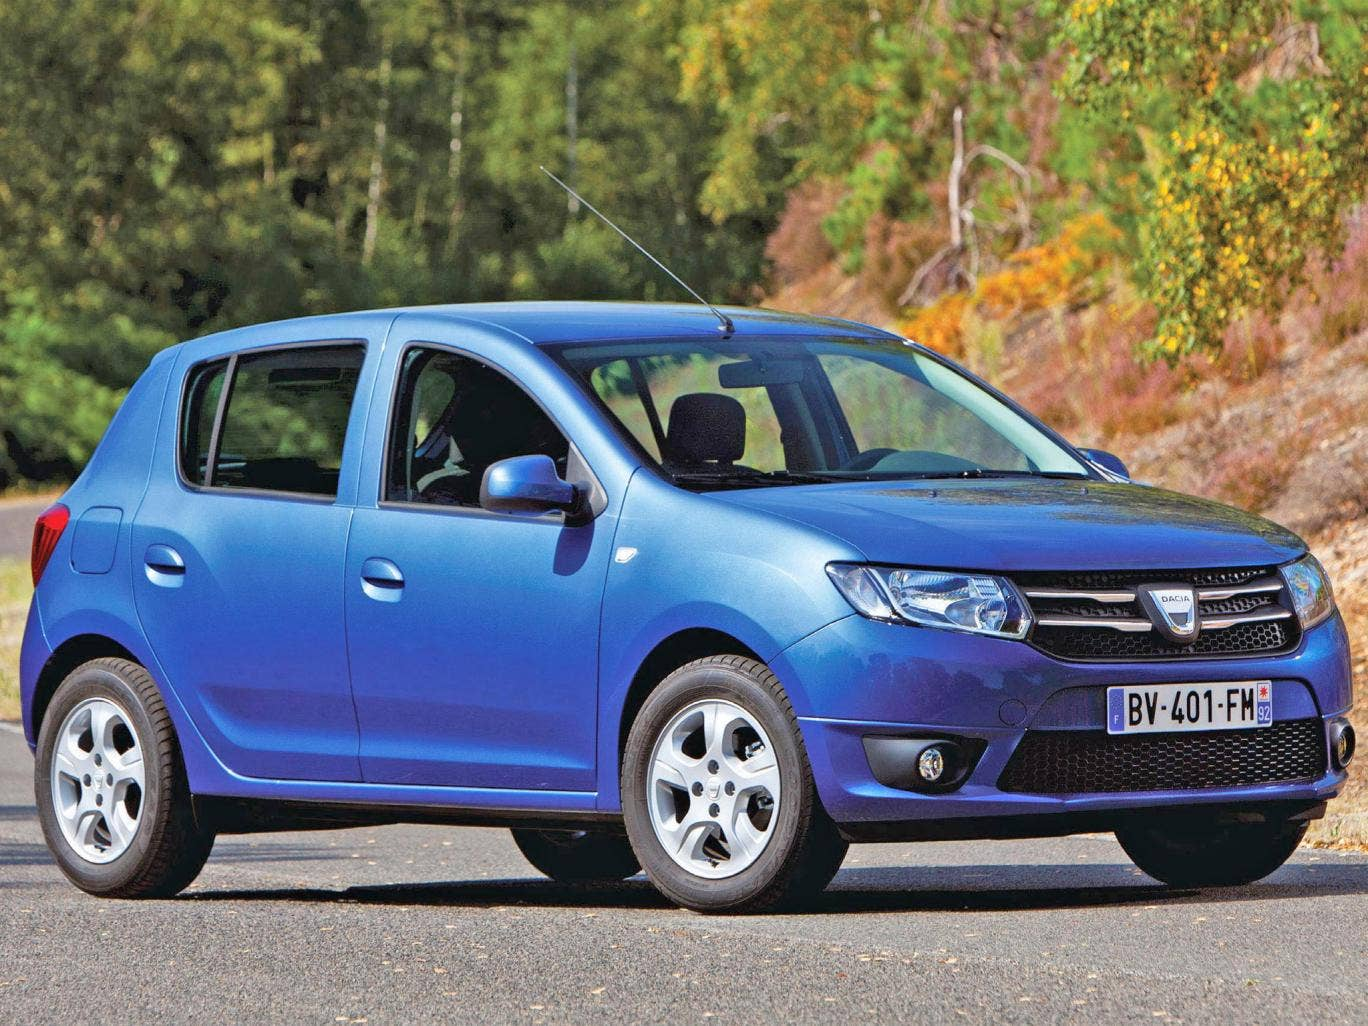 Fizzing with potential: The new Dacia Sandero Laureate